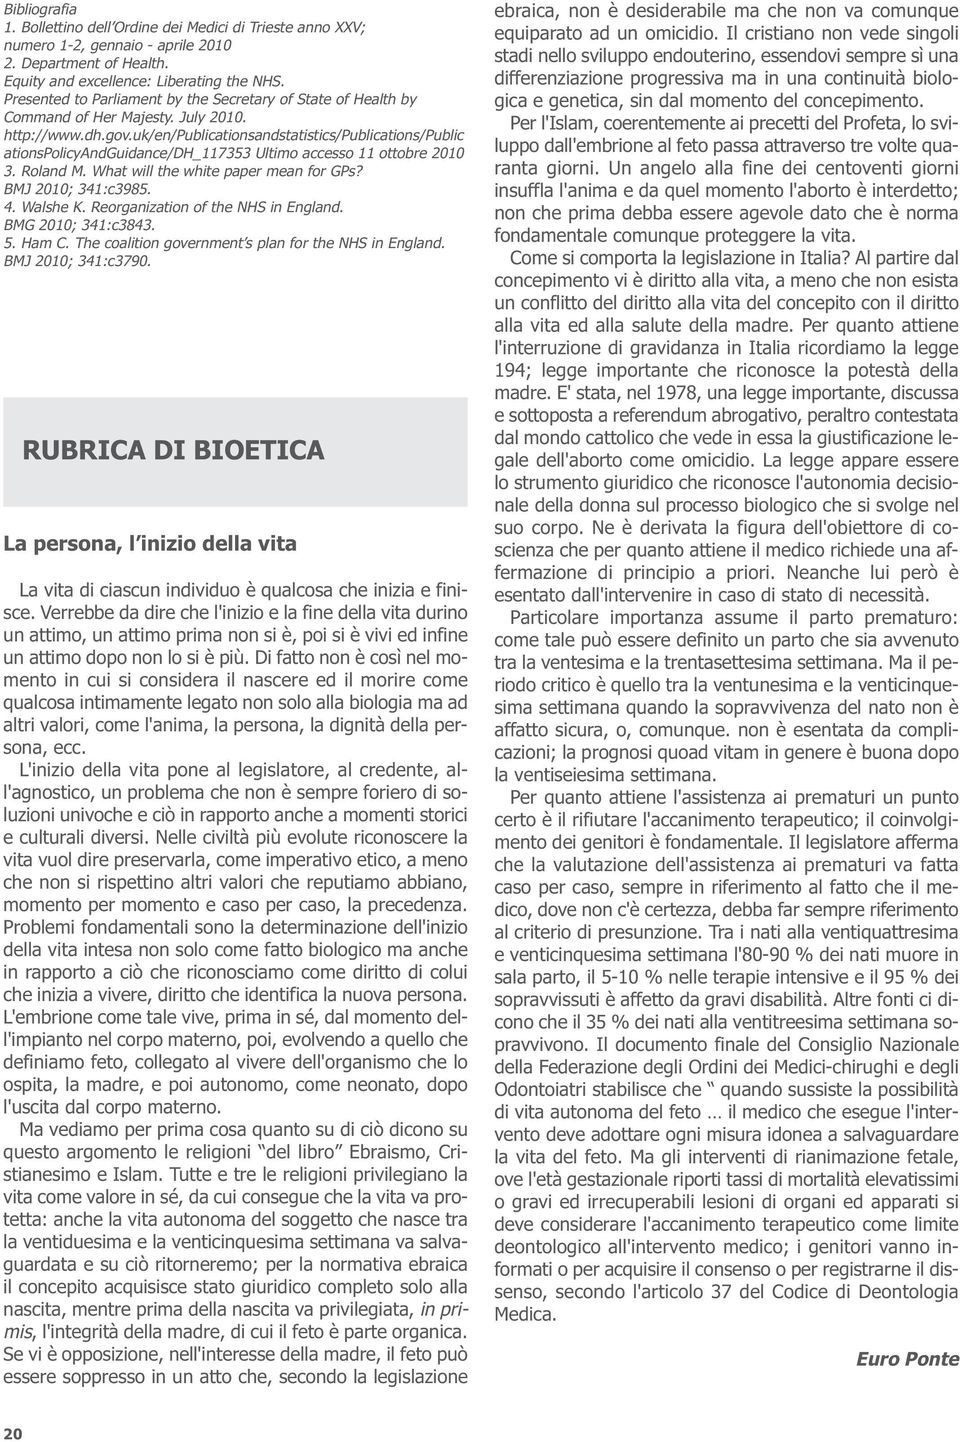 uk/en/publicationsandstatistics/publications/public ationspolicyandguidance/dh_117353 Ultimo accesso 11 ottobre 2010 3. Roland M. What will the white paper mean for GPs? BMJ 2010; 341:c3985. 4.